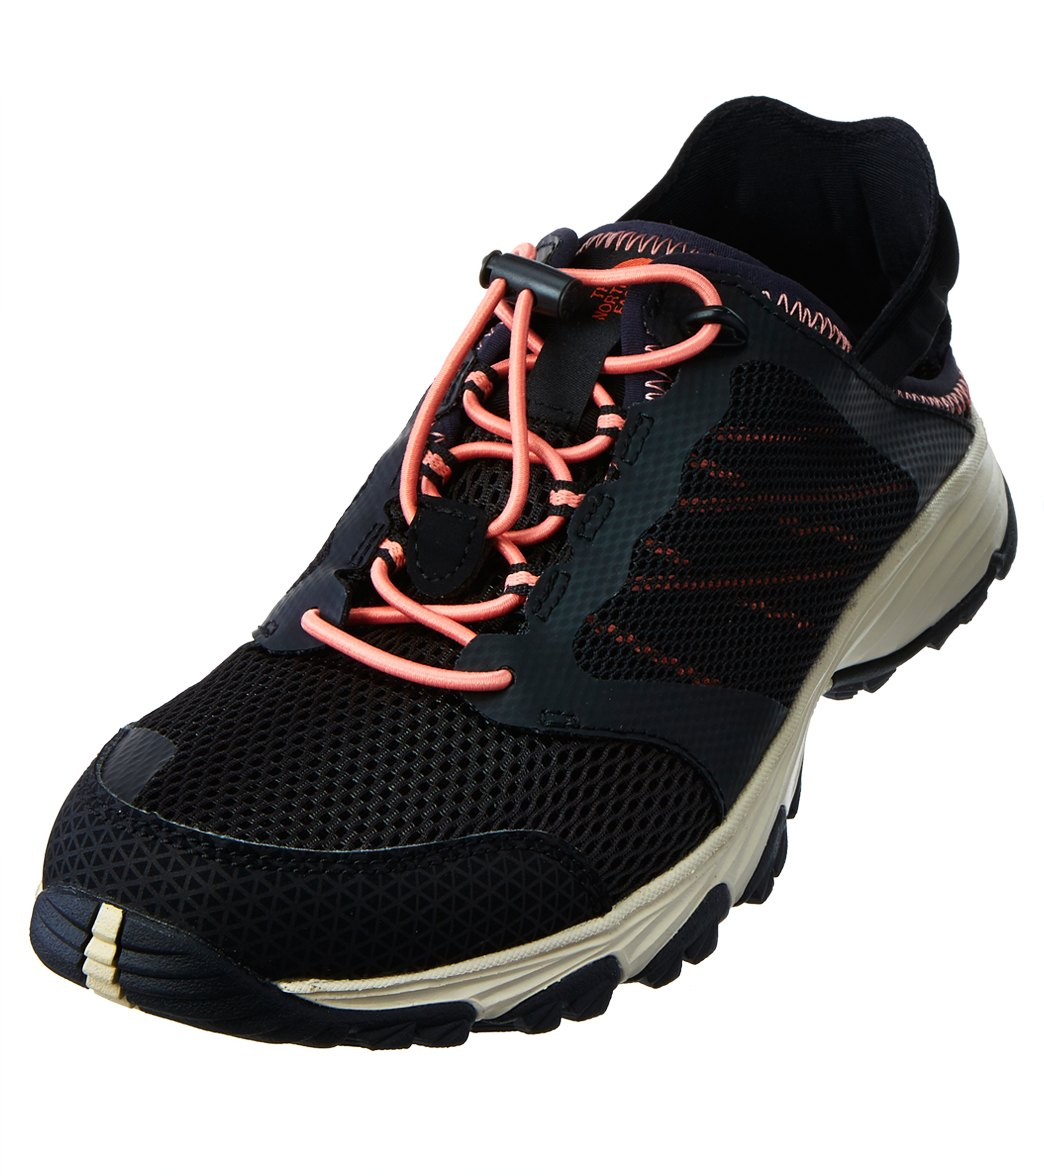 aae50e71155d The North Face Women s Lightwave Amphibous II Water Shoe at SwimOutlet.com  - Free Shipping